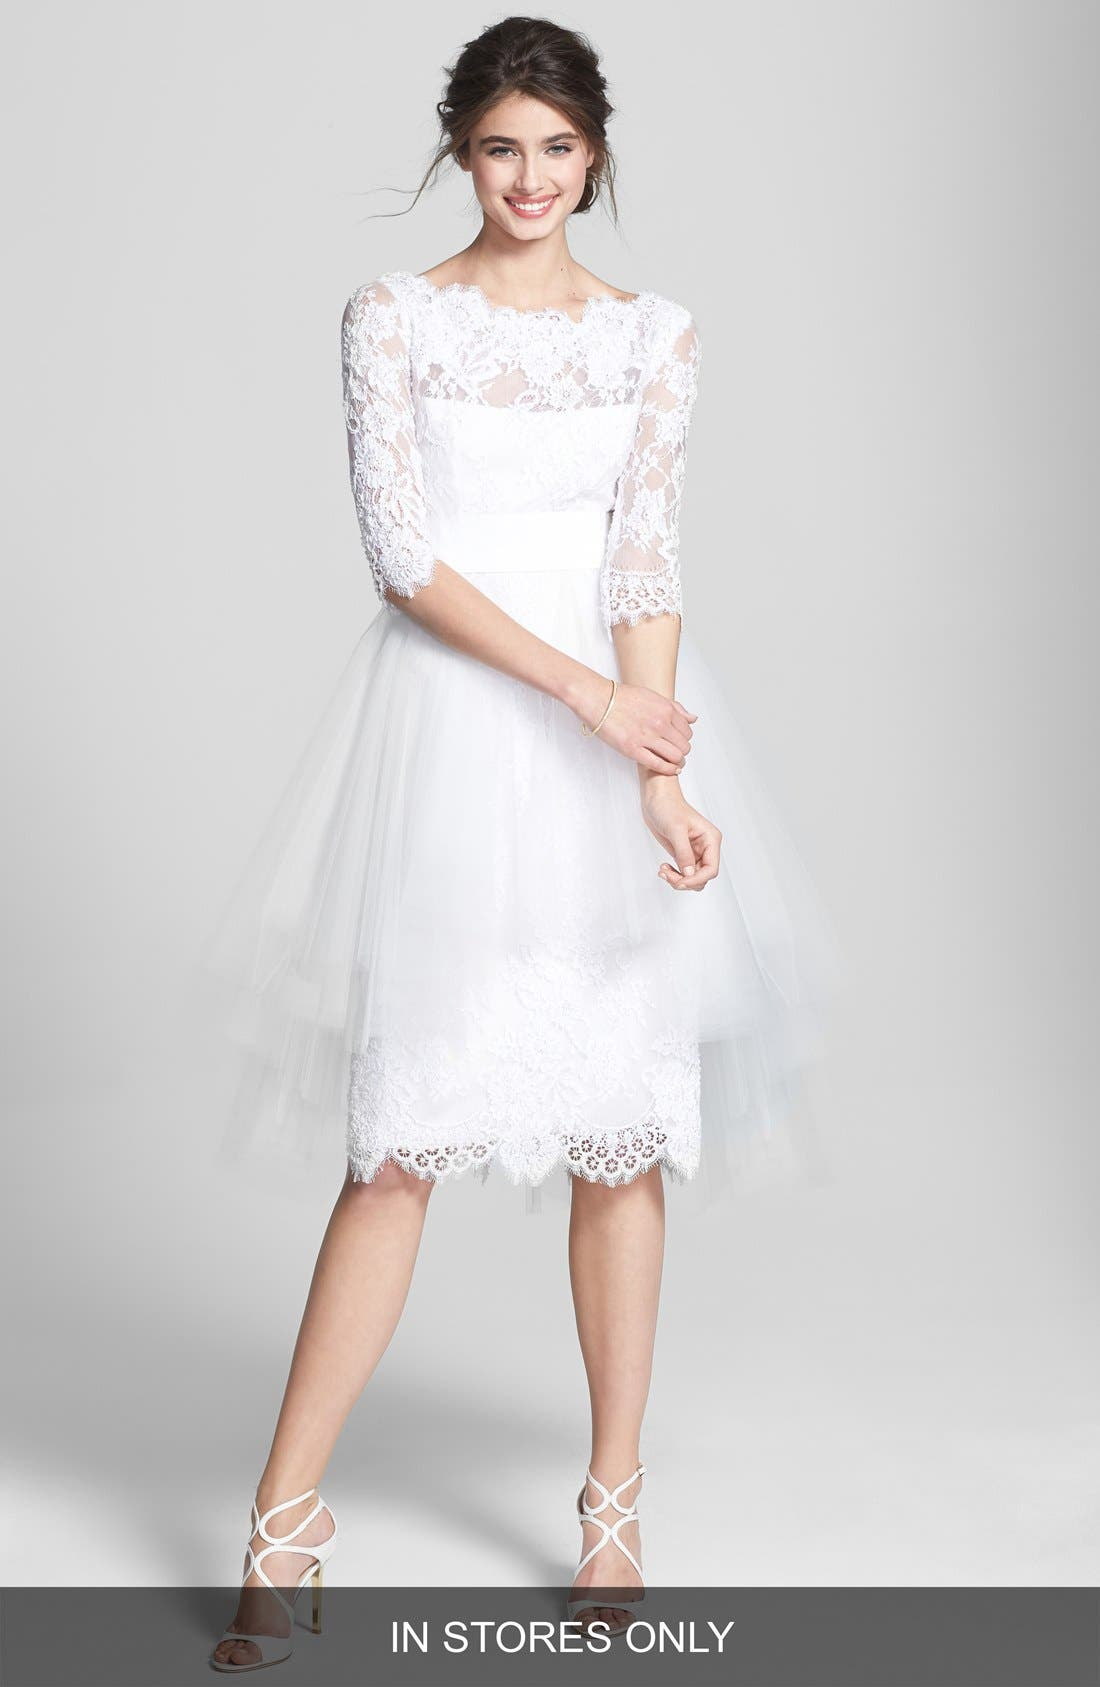 Alternate Image 1 Selected - Marchesa Tulle Overskirt Embroidered Lace Dress (In Stores Only)